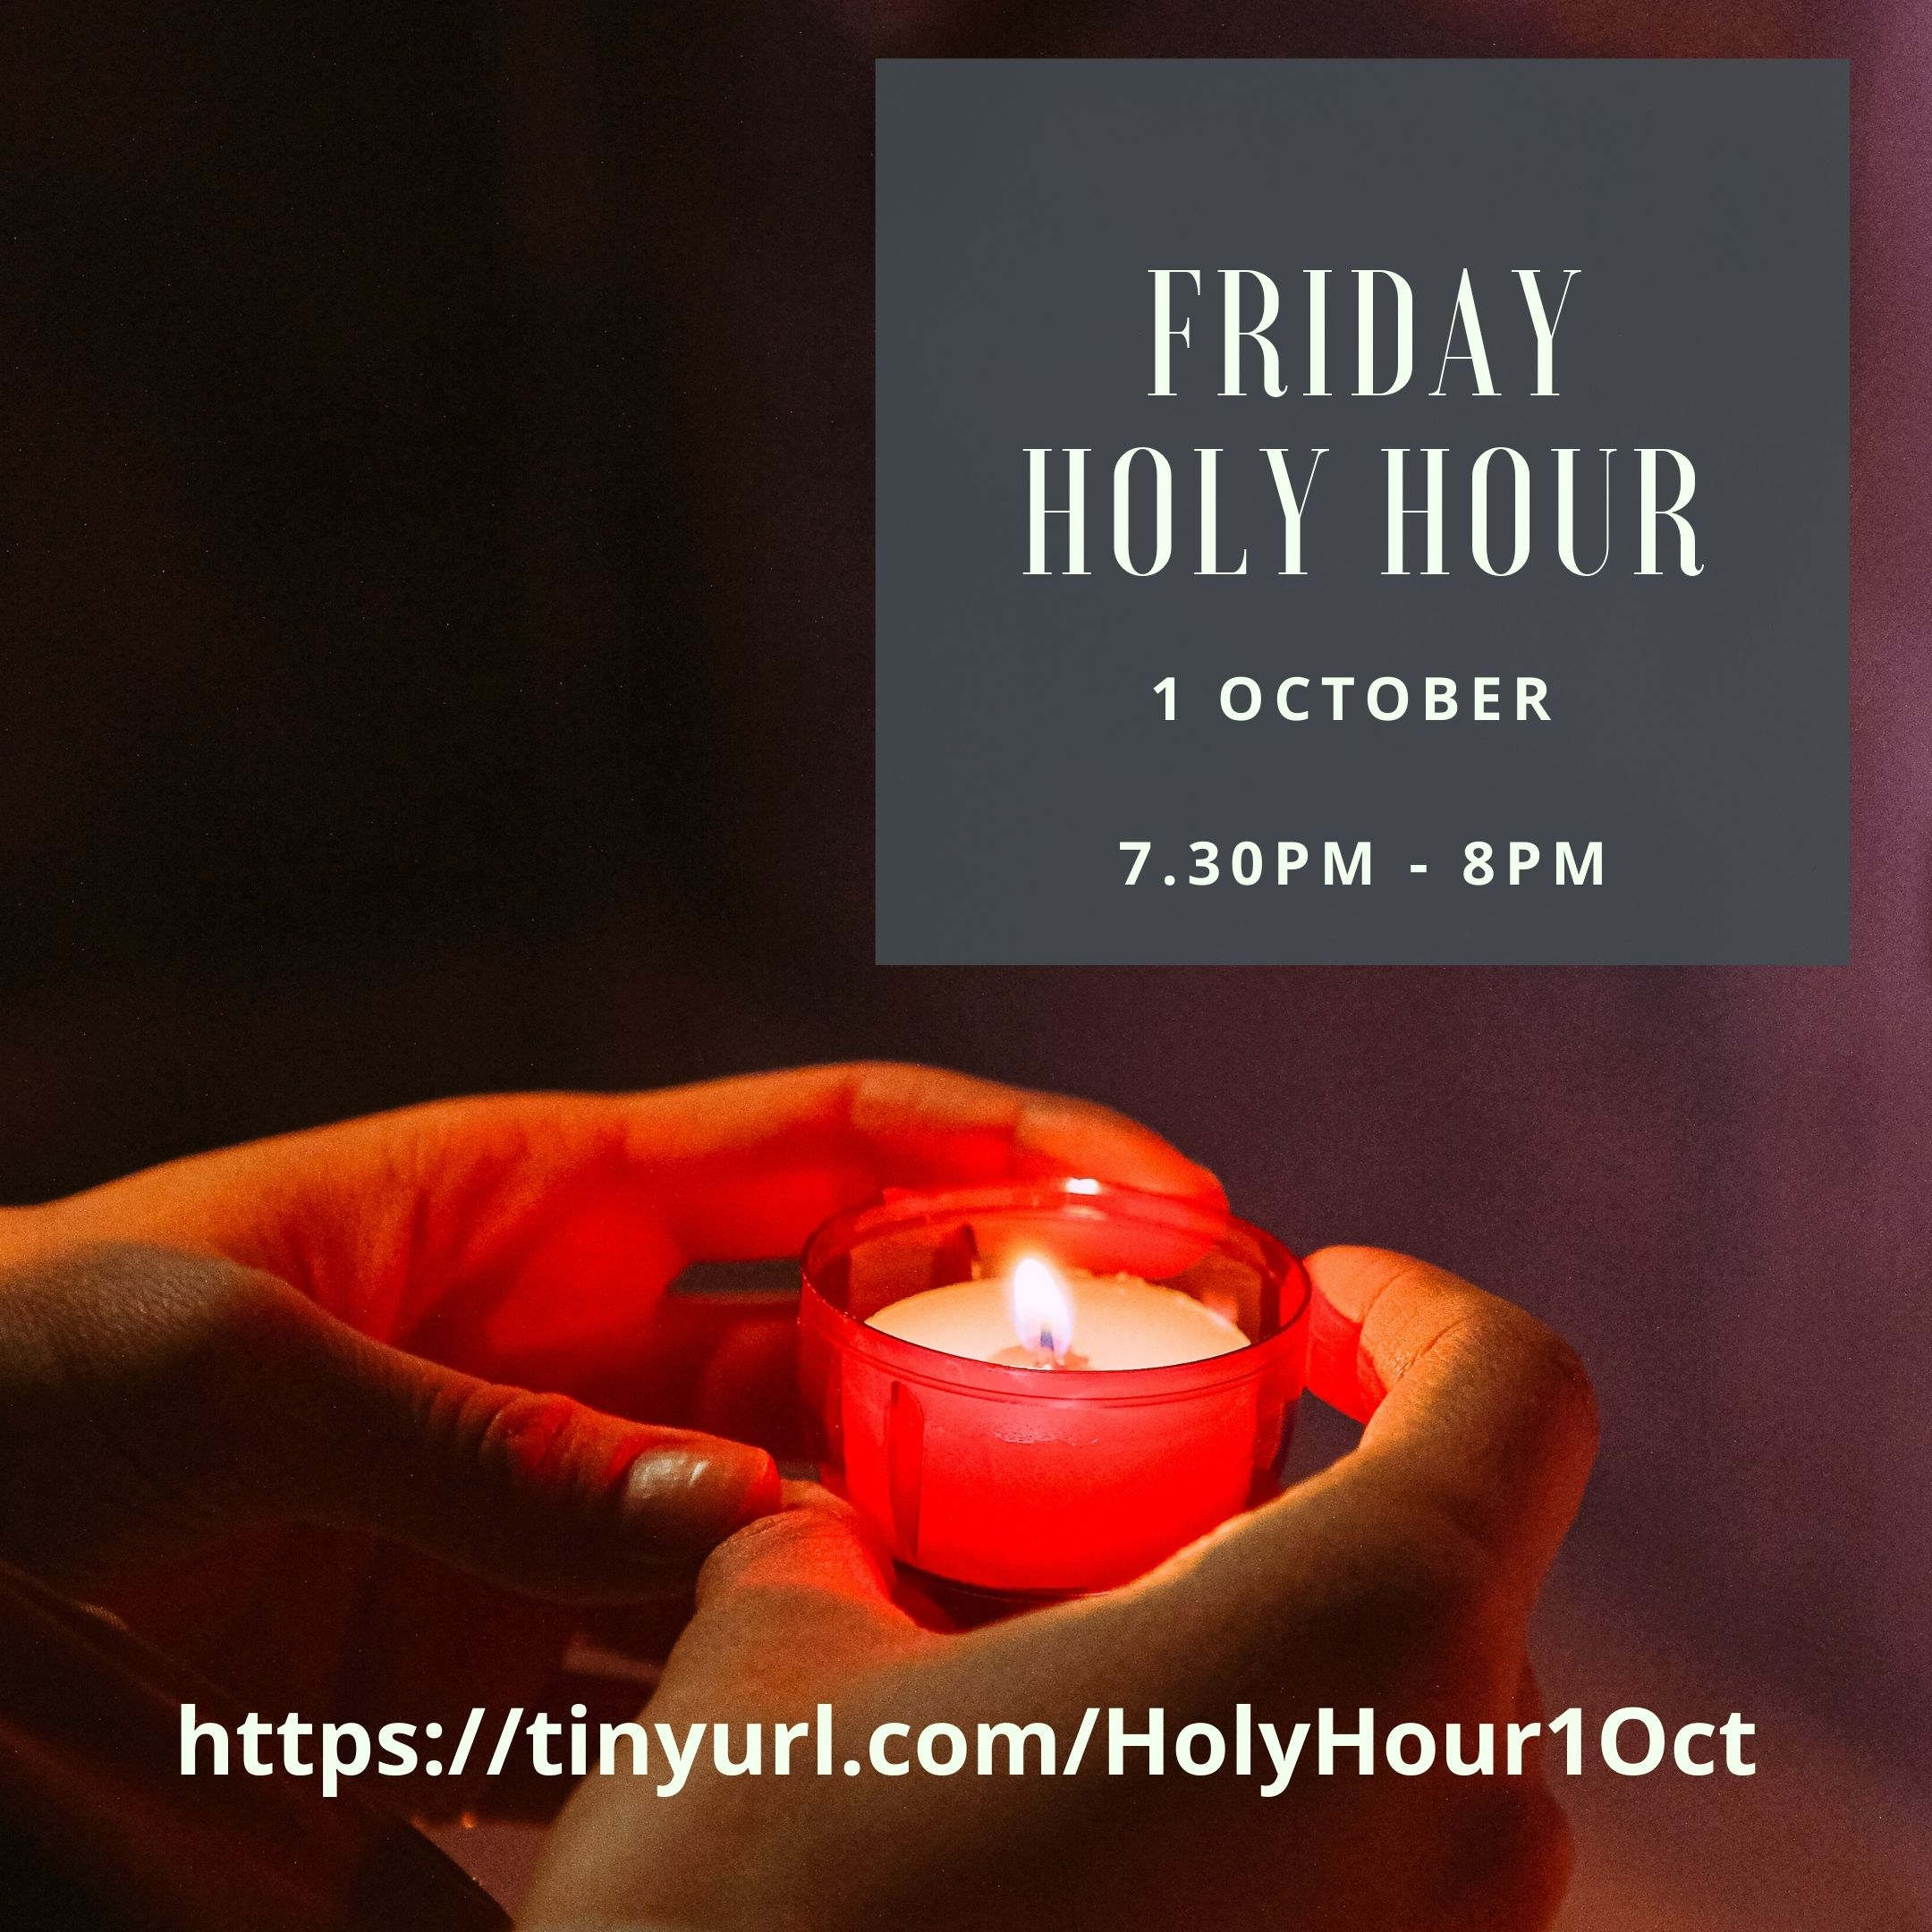 Friday Holy HOUR Oct